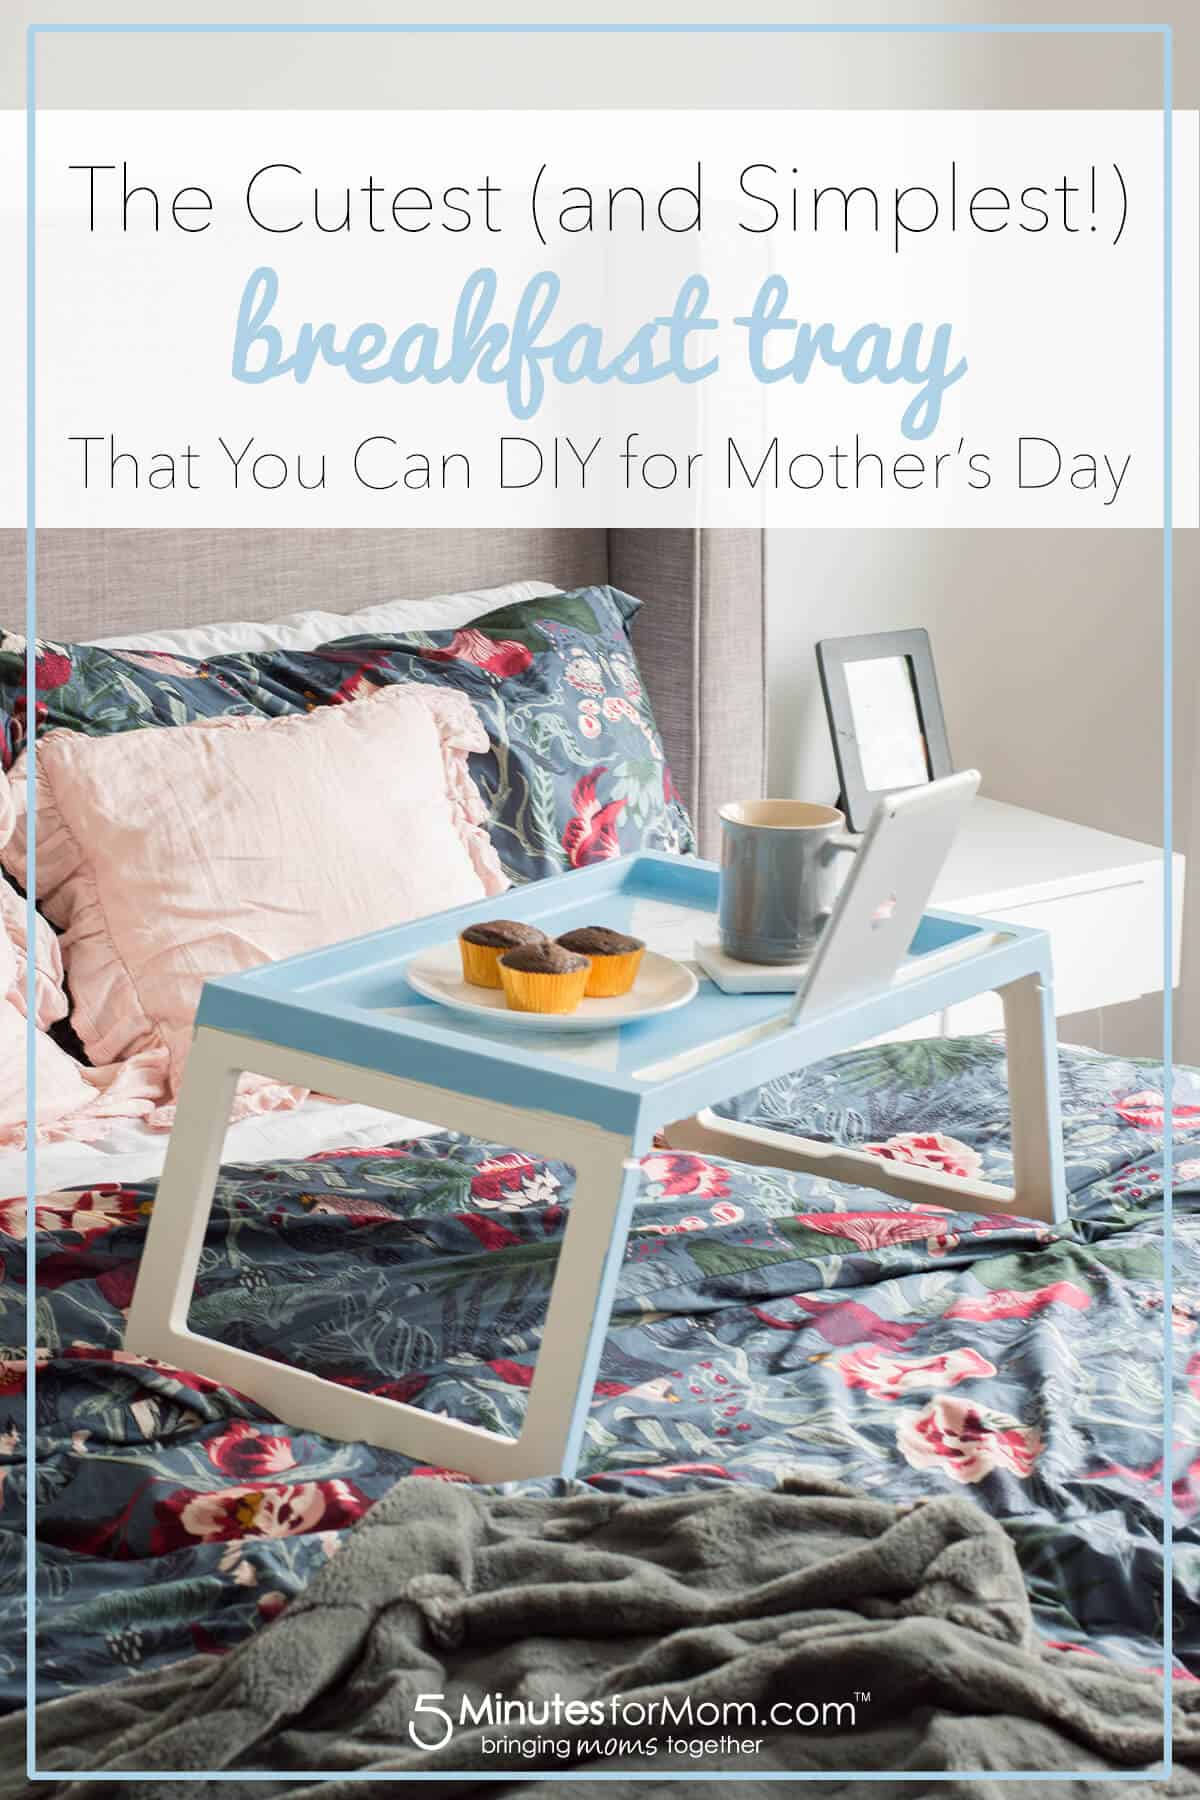 IKEA Hack Breakfast Tray DIY - Perfect Mother's Day Gift Idea - Easy way to elevate the look of an otherwise plain tray. #ikeahack #diygift #mothersdaygift